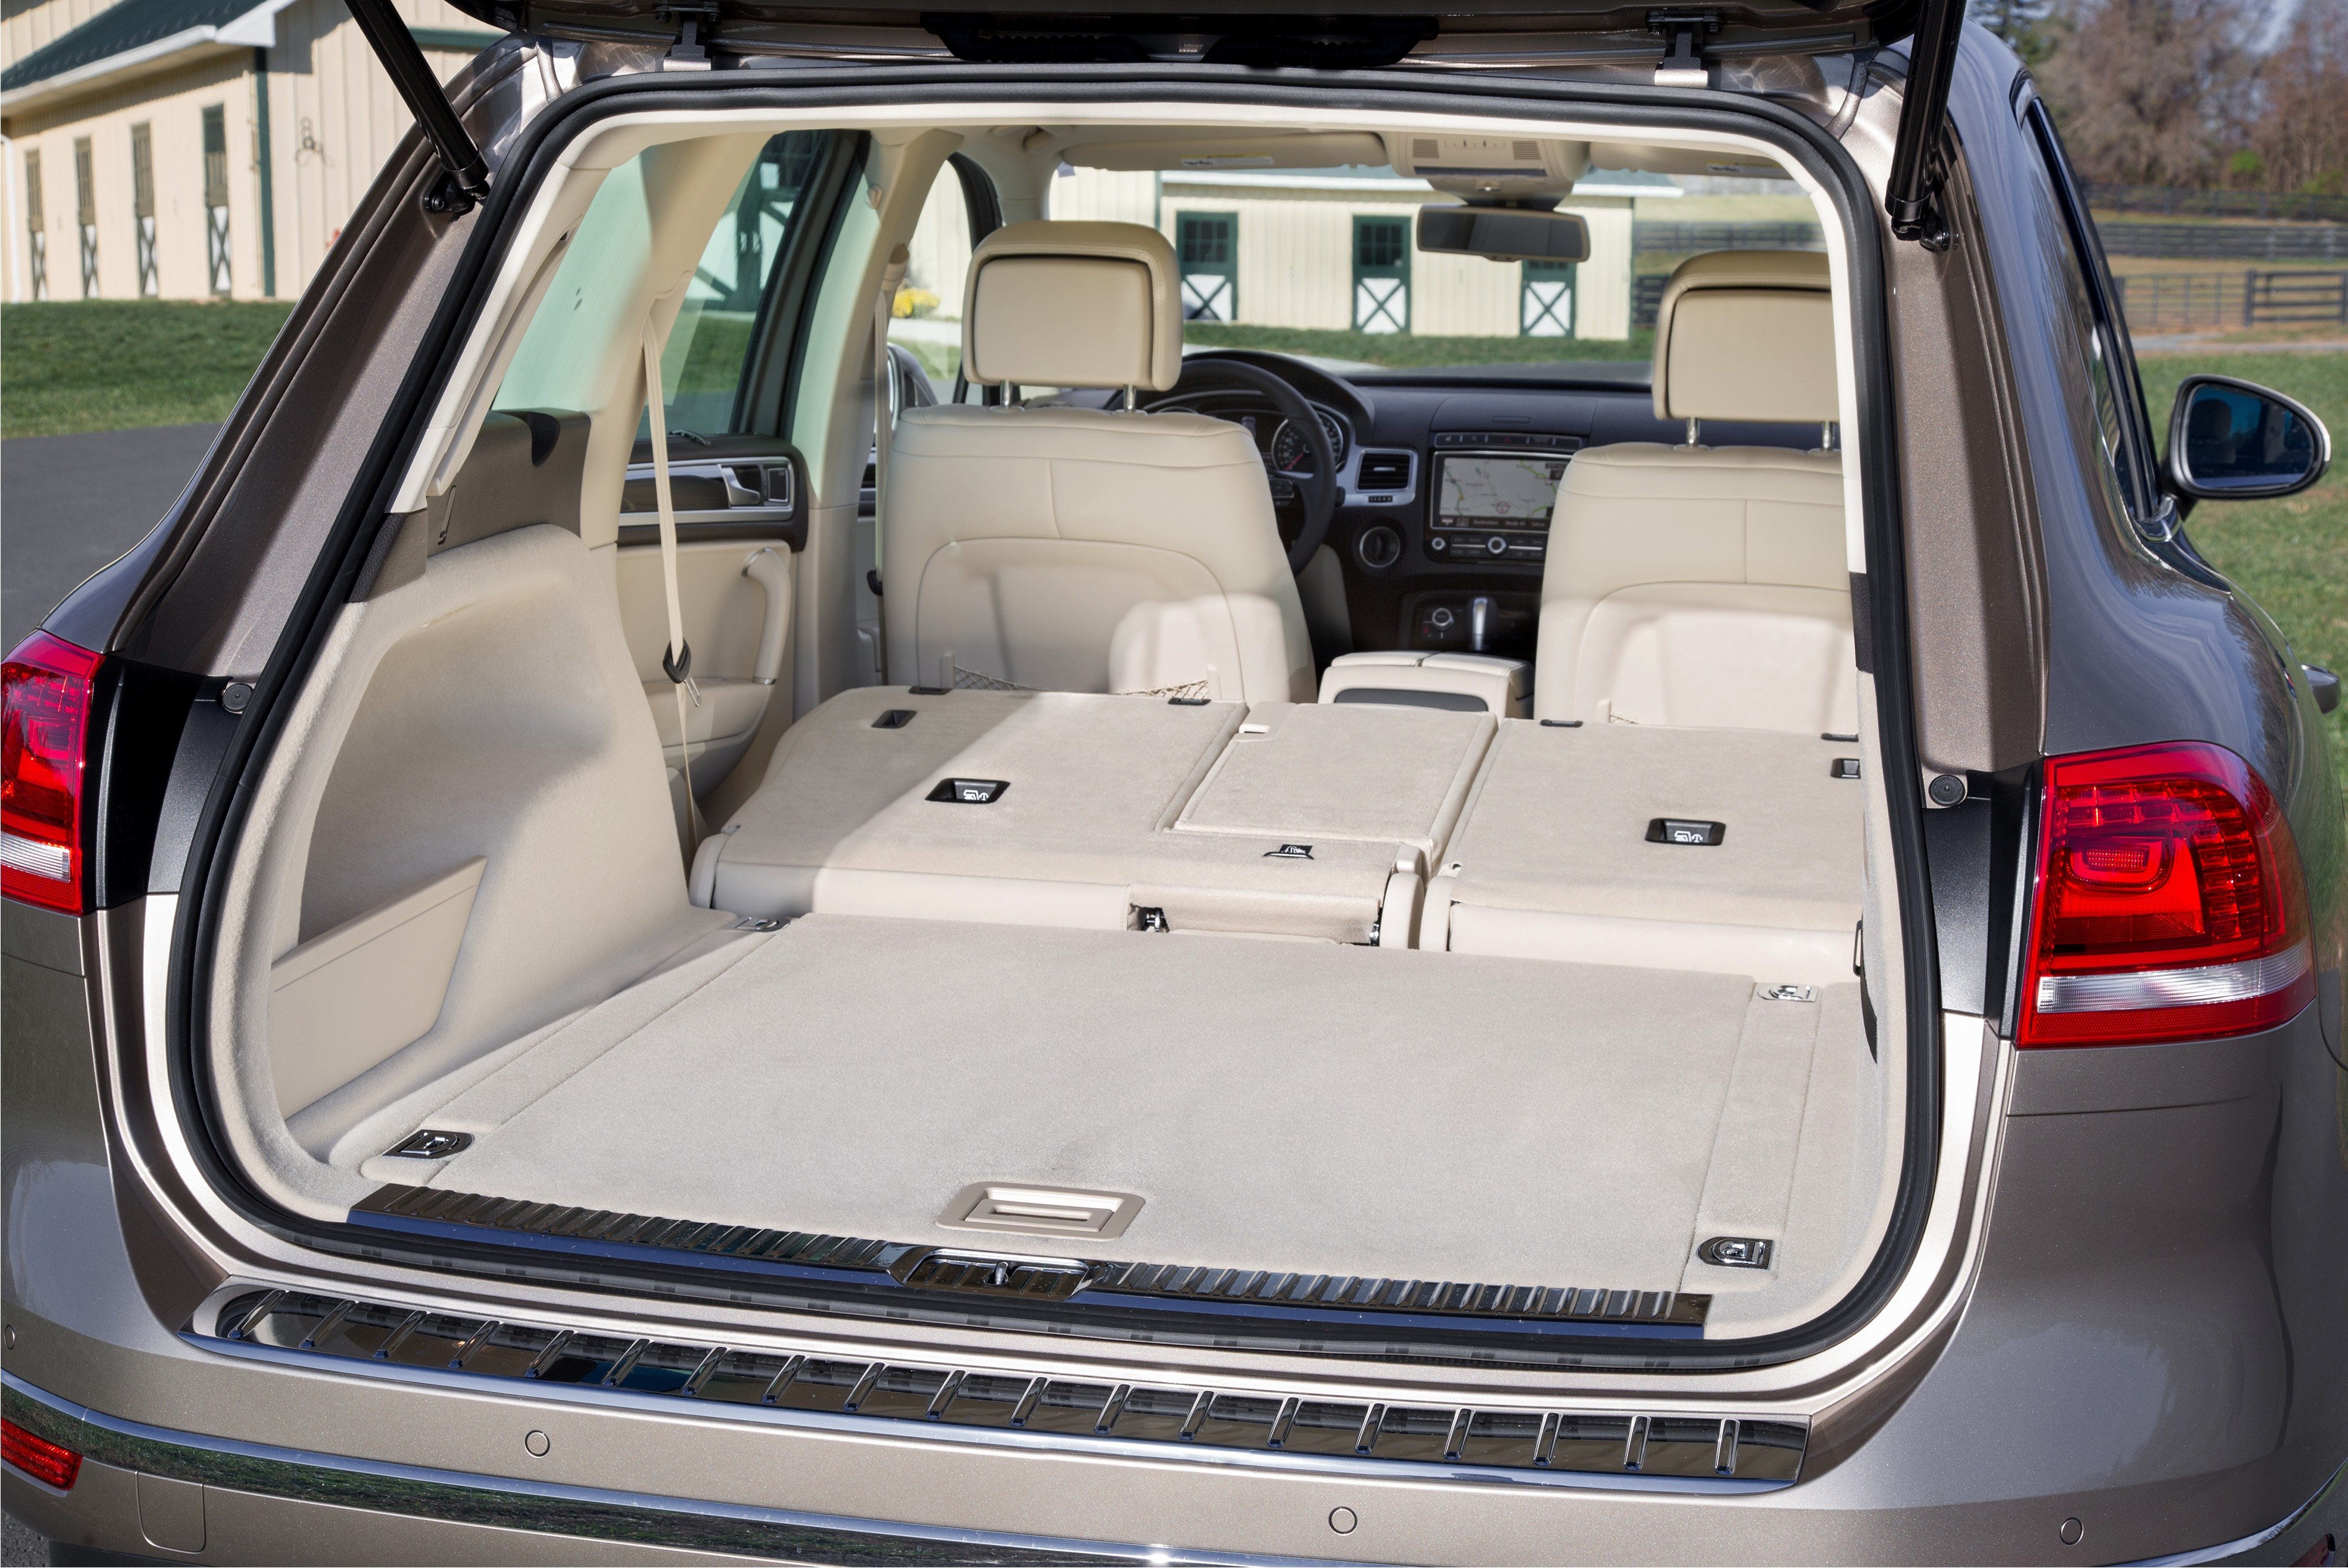 in volkswagen car sell cardetails touareg mycar recent bahrain img bh buy